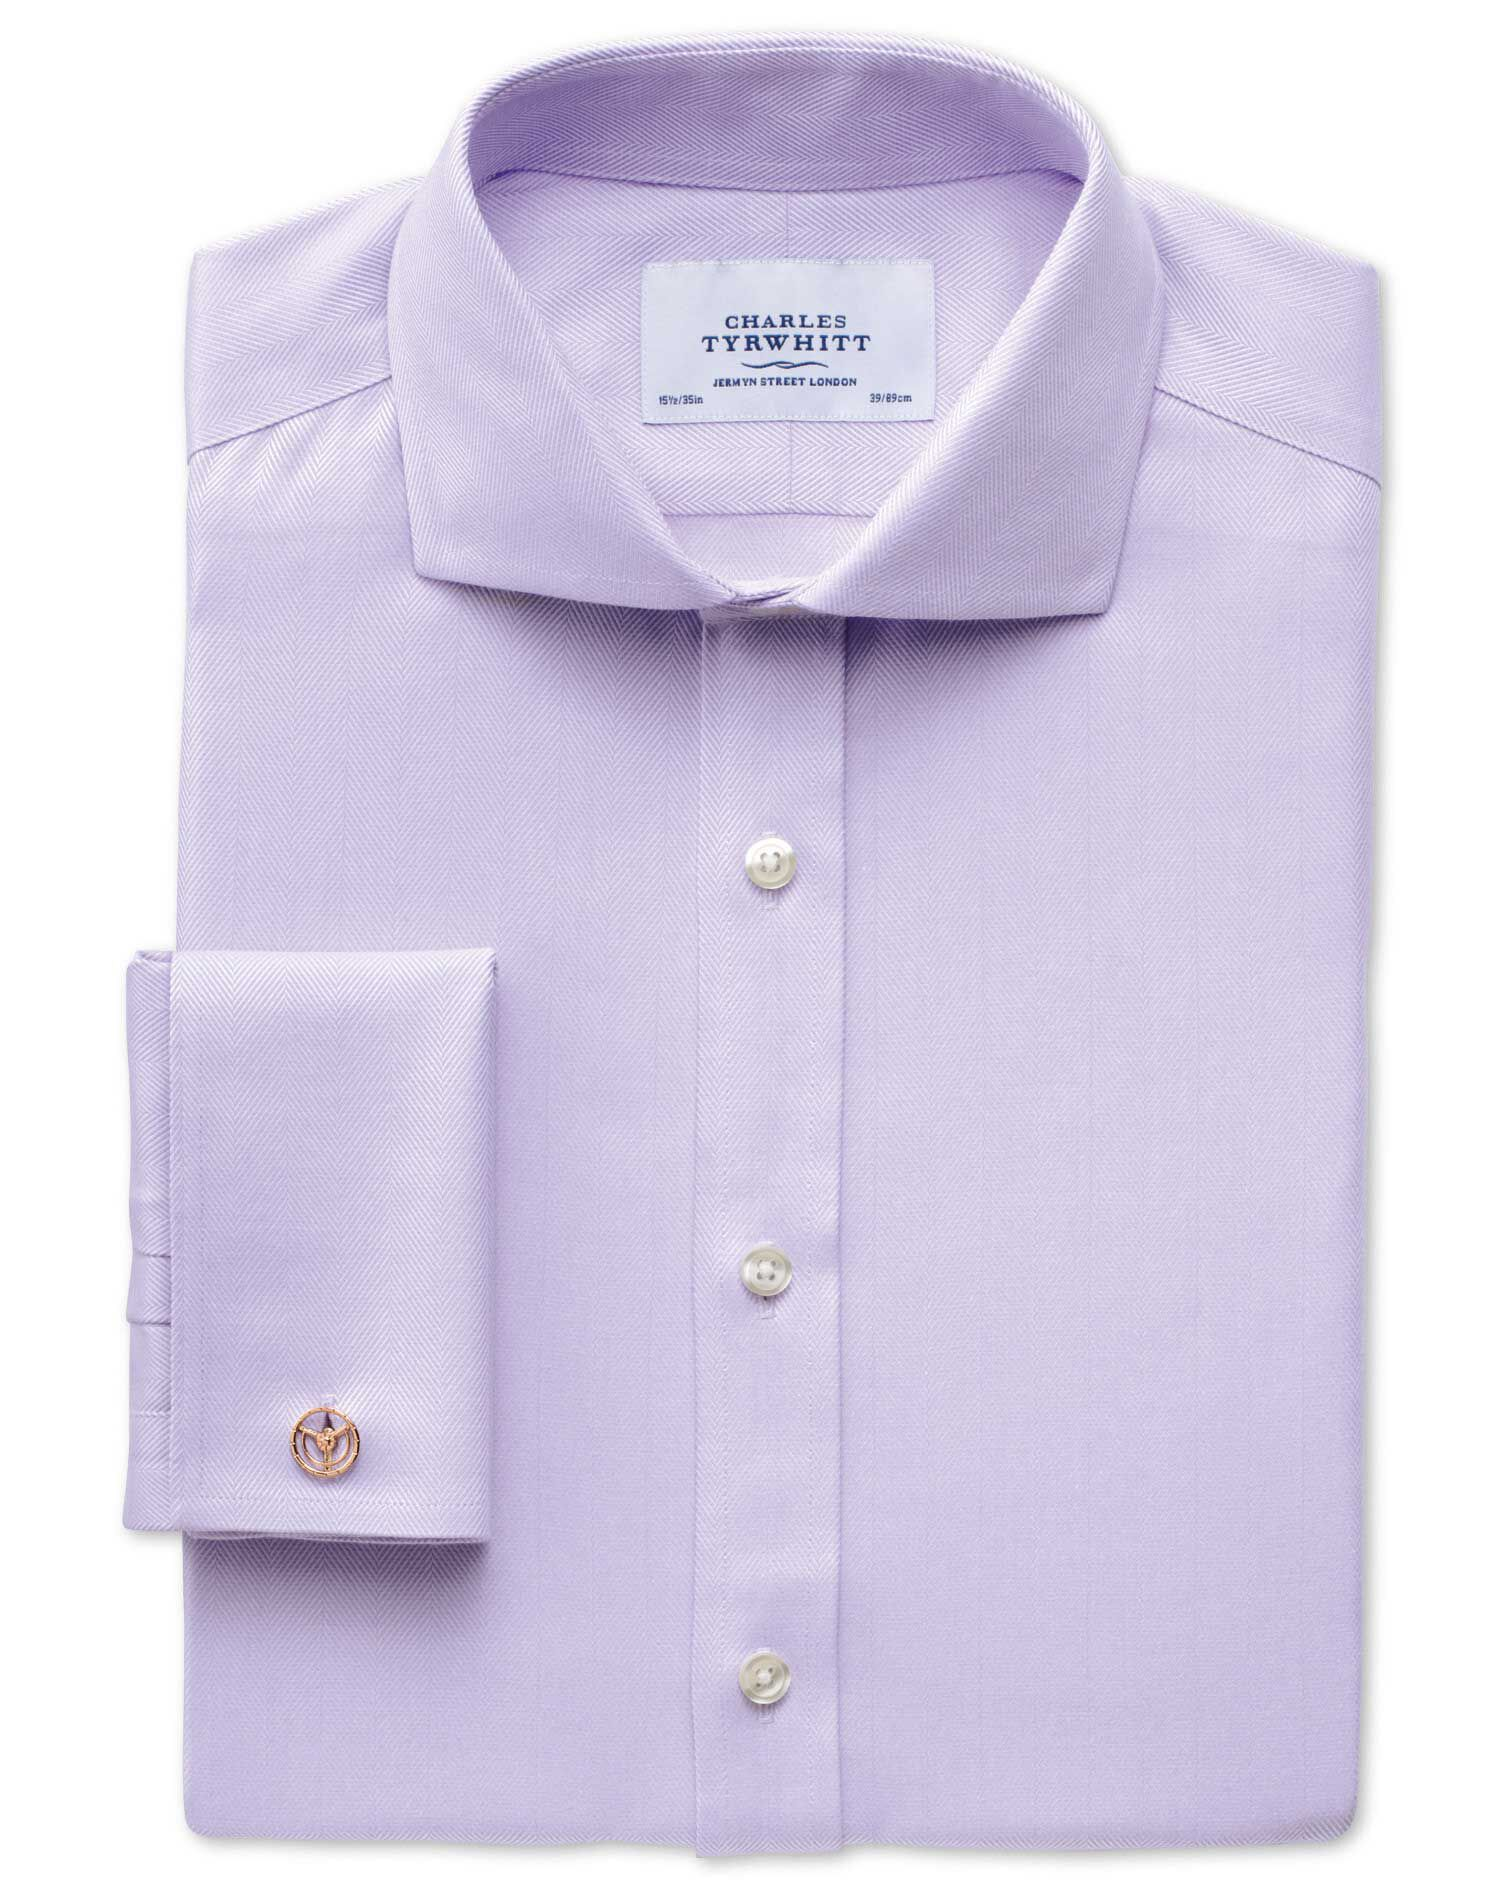 Slim Fit Cutaway Collar Non-Iron Herringbone Lilac Cotton Formal Shirt Double Cuff Size 17/38 by Cha